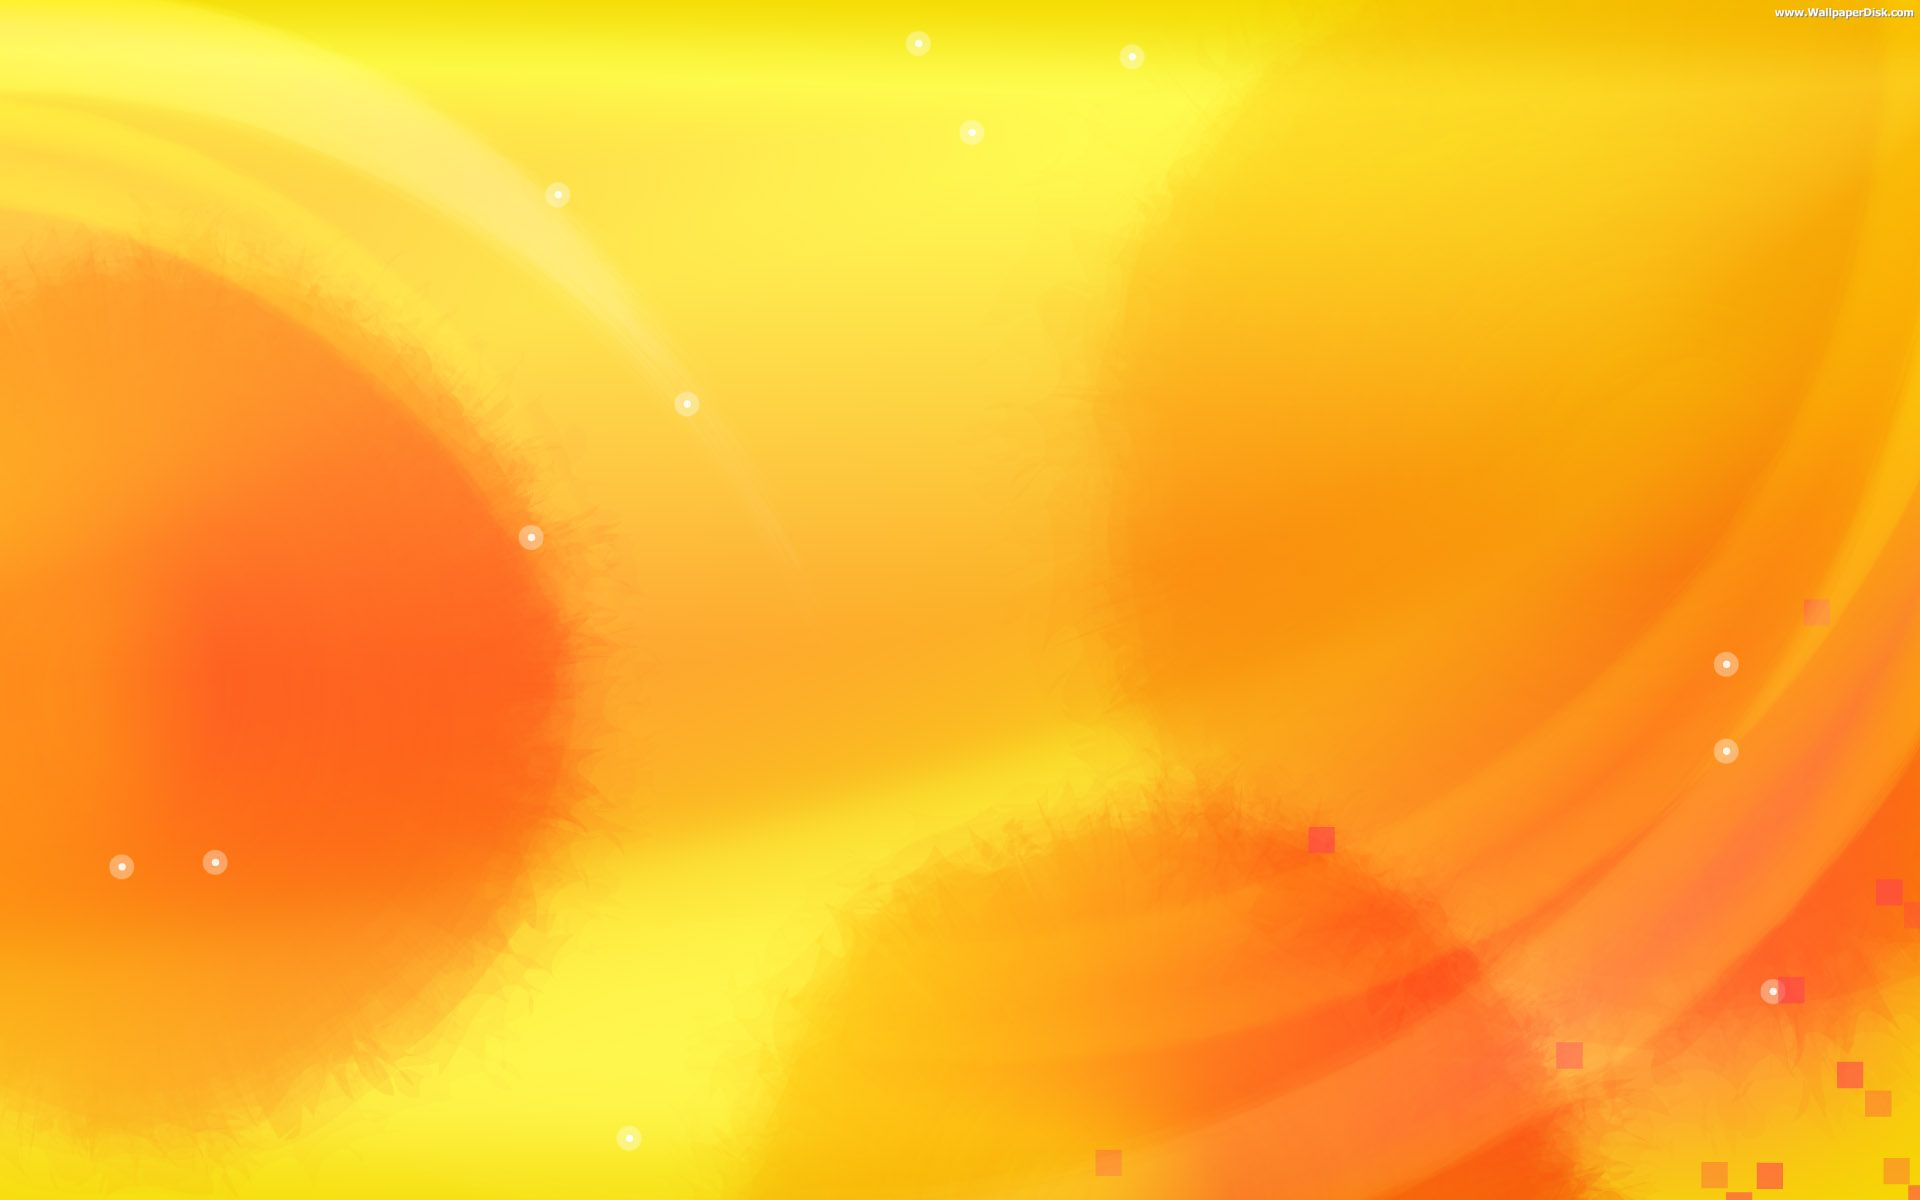 orange stains background wallpapers wallpaper papers designs 1920x1200